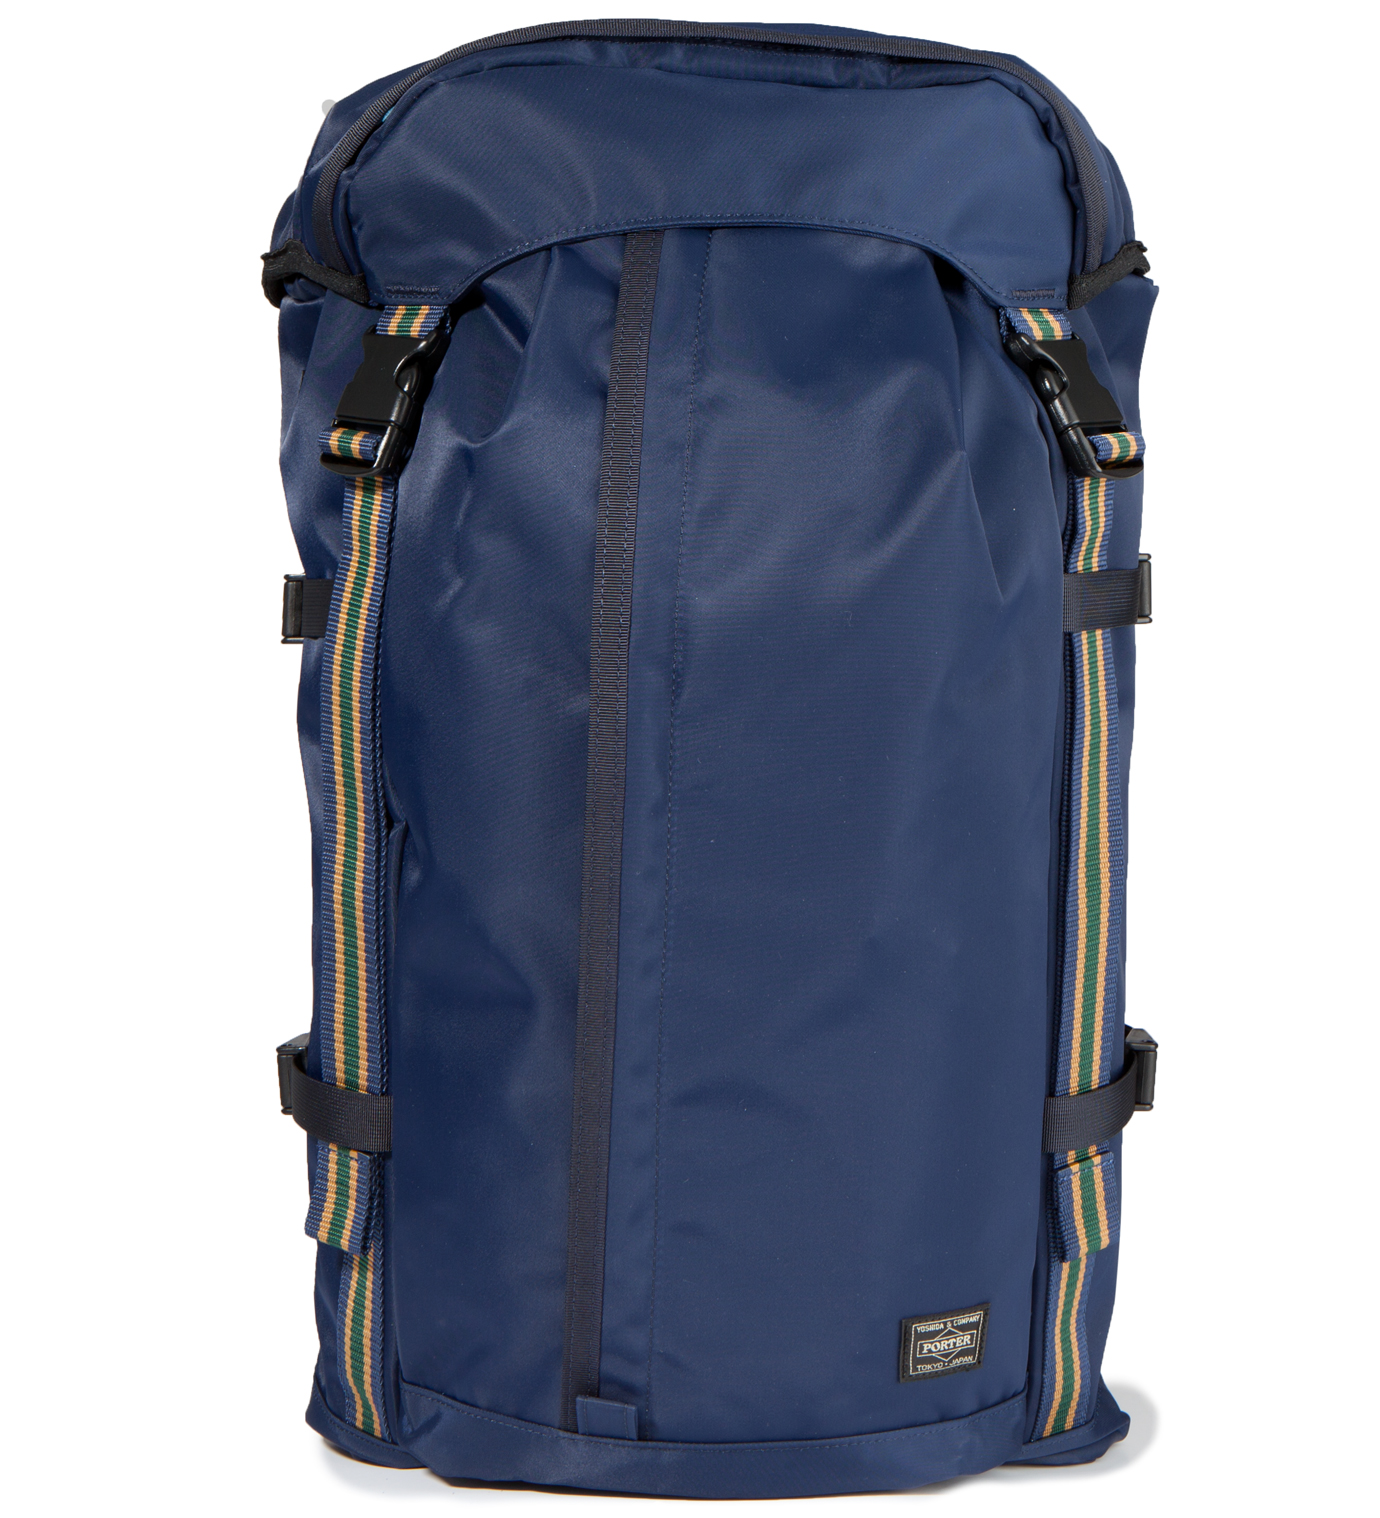 Head Porter Navy Ruck Sack